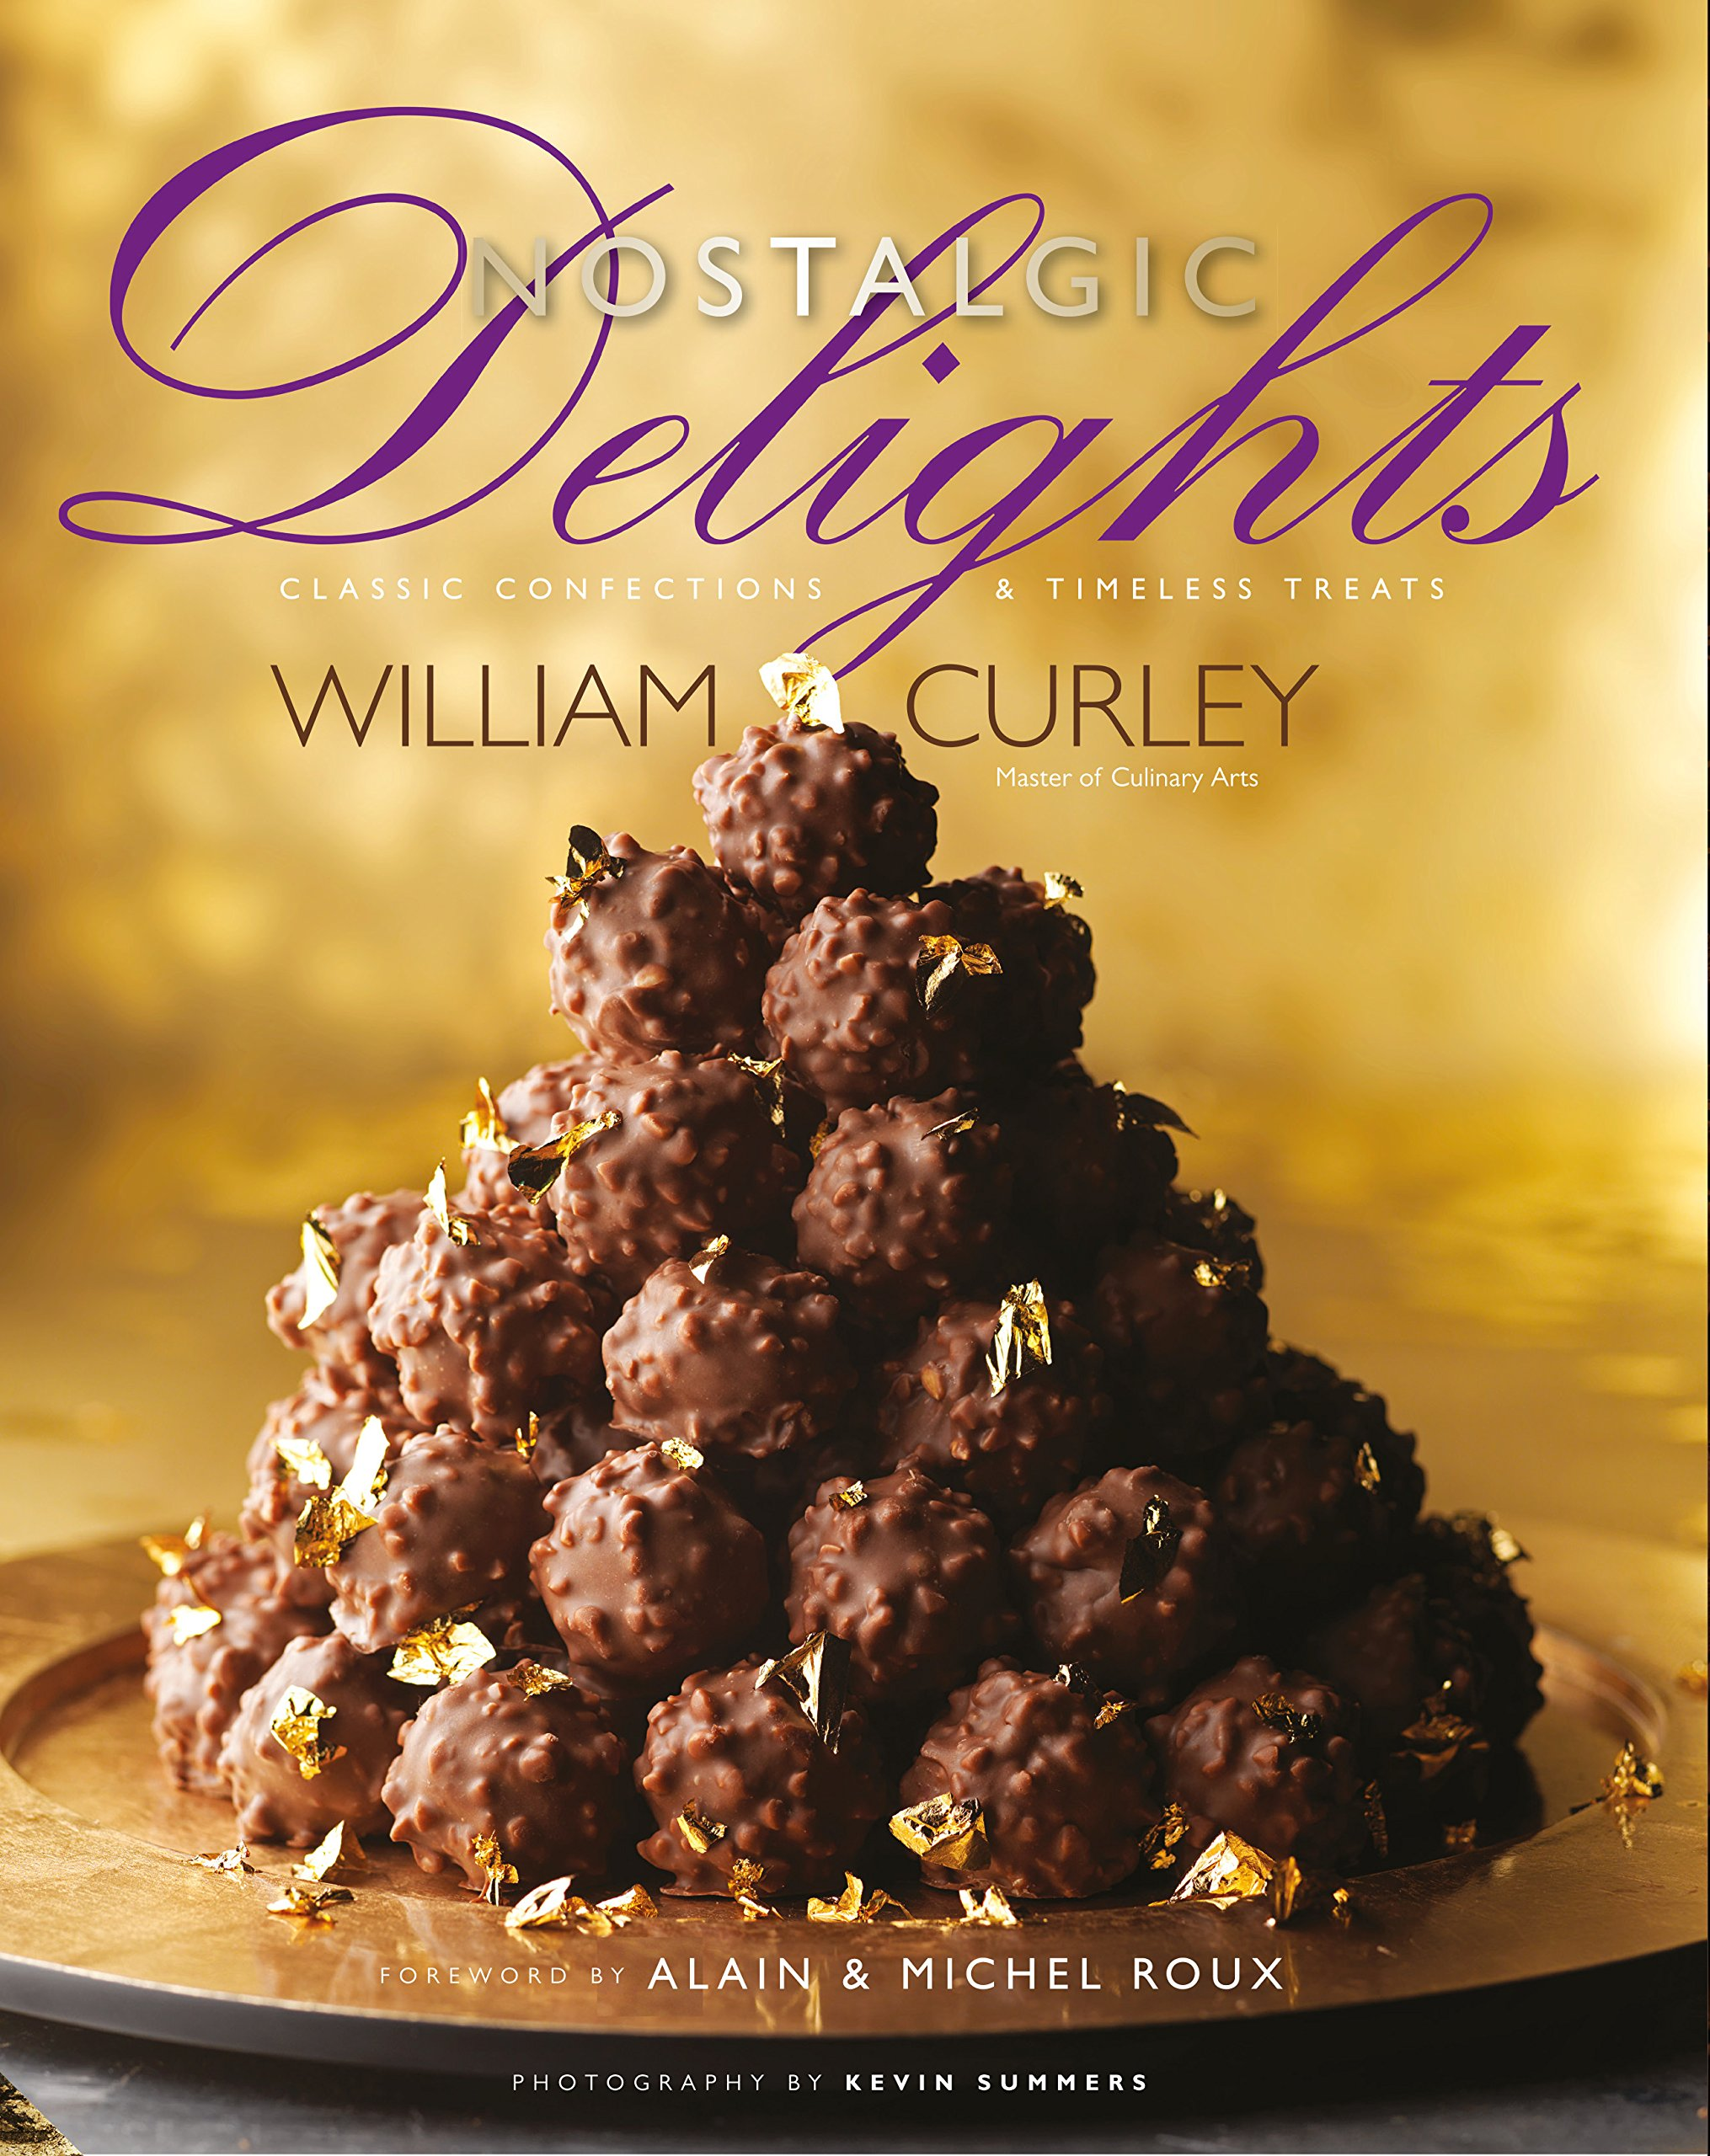 Read Online Nostalgic Delights: Classic Confections & Timeless Treats ebook